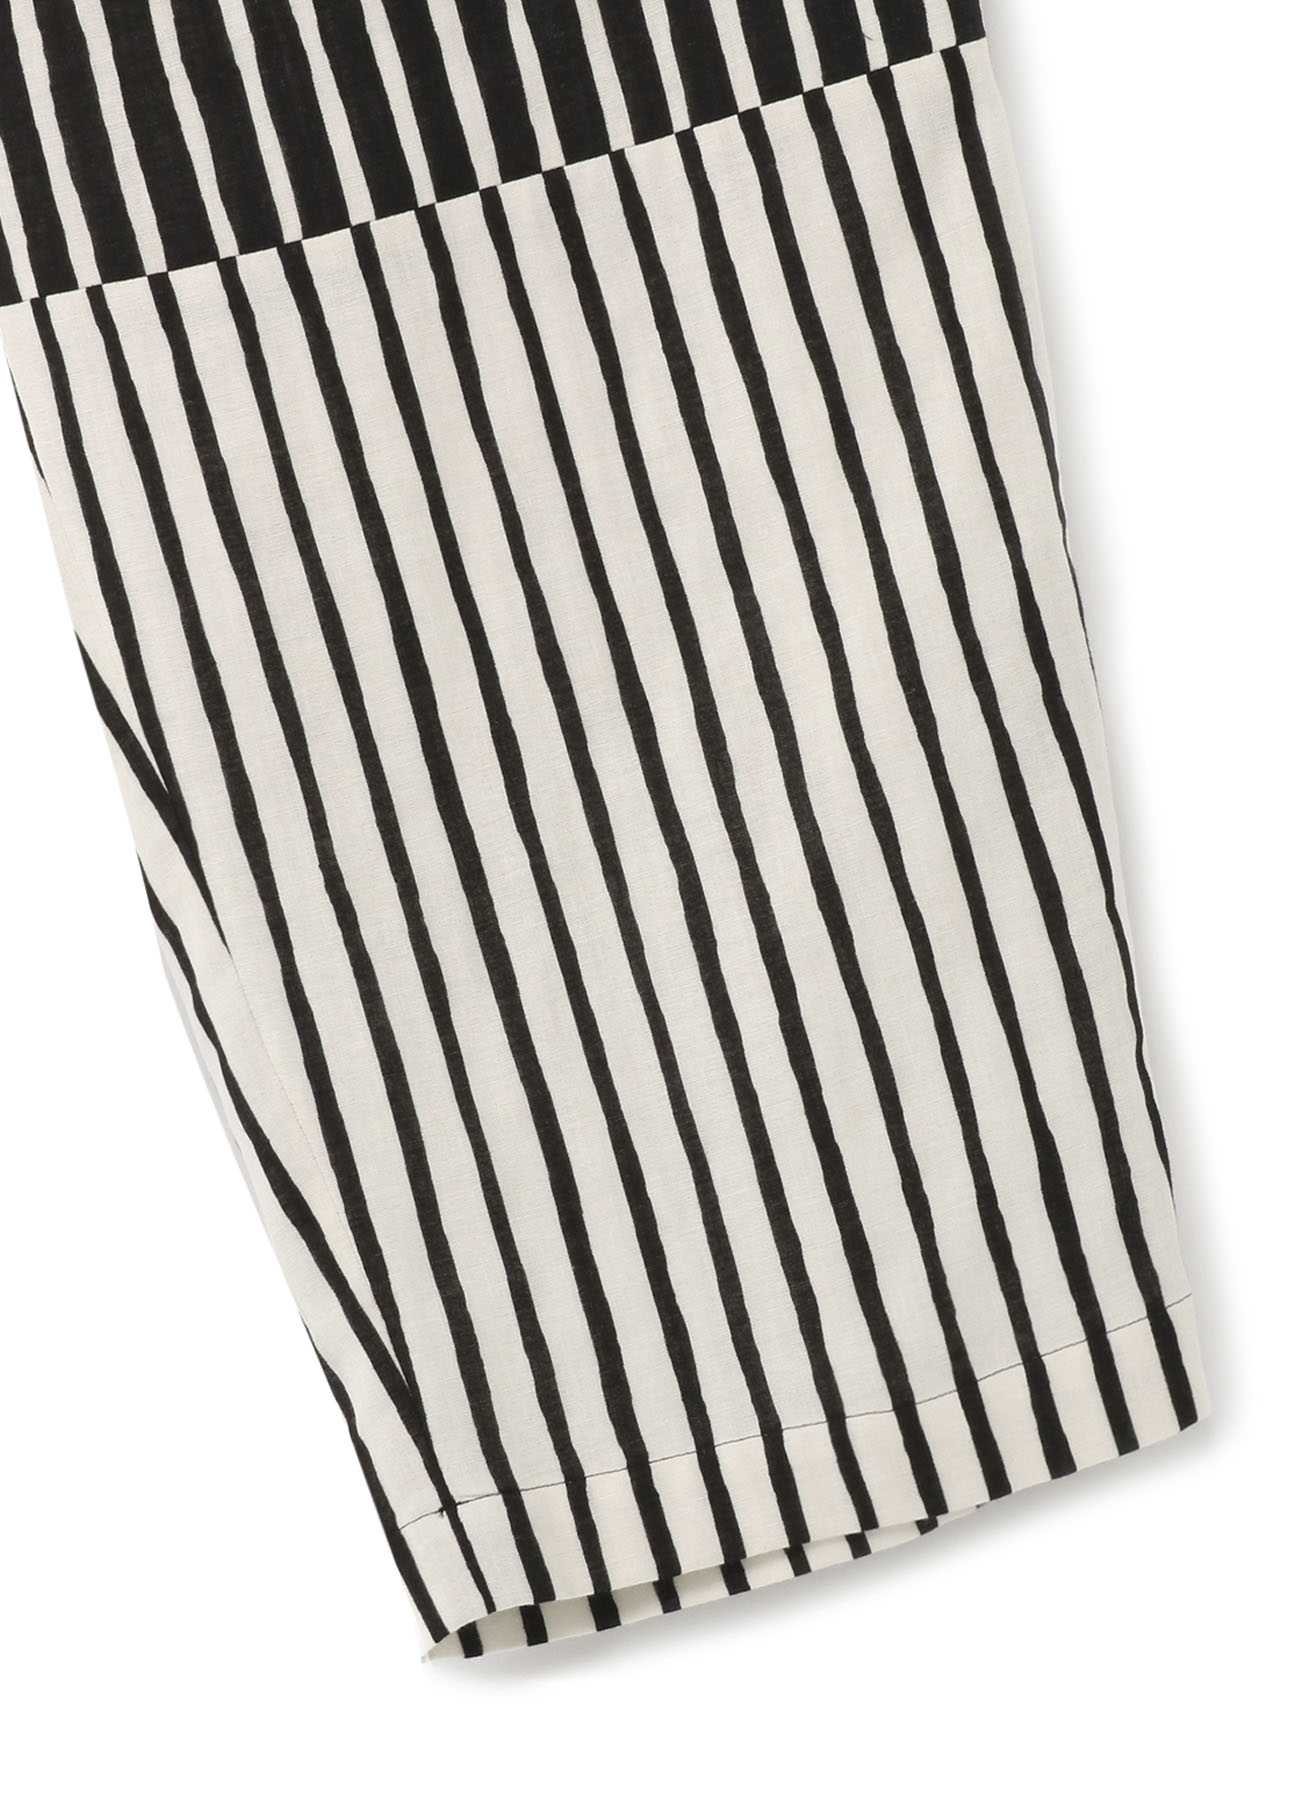 Two-Tone Stripe Panel 3Tuck High Waist Pants